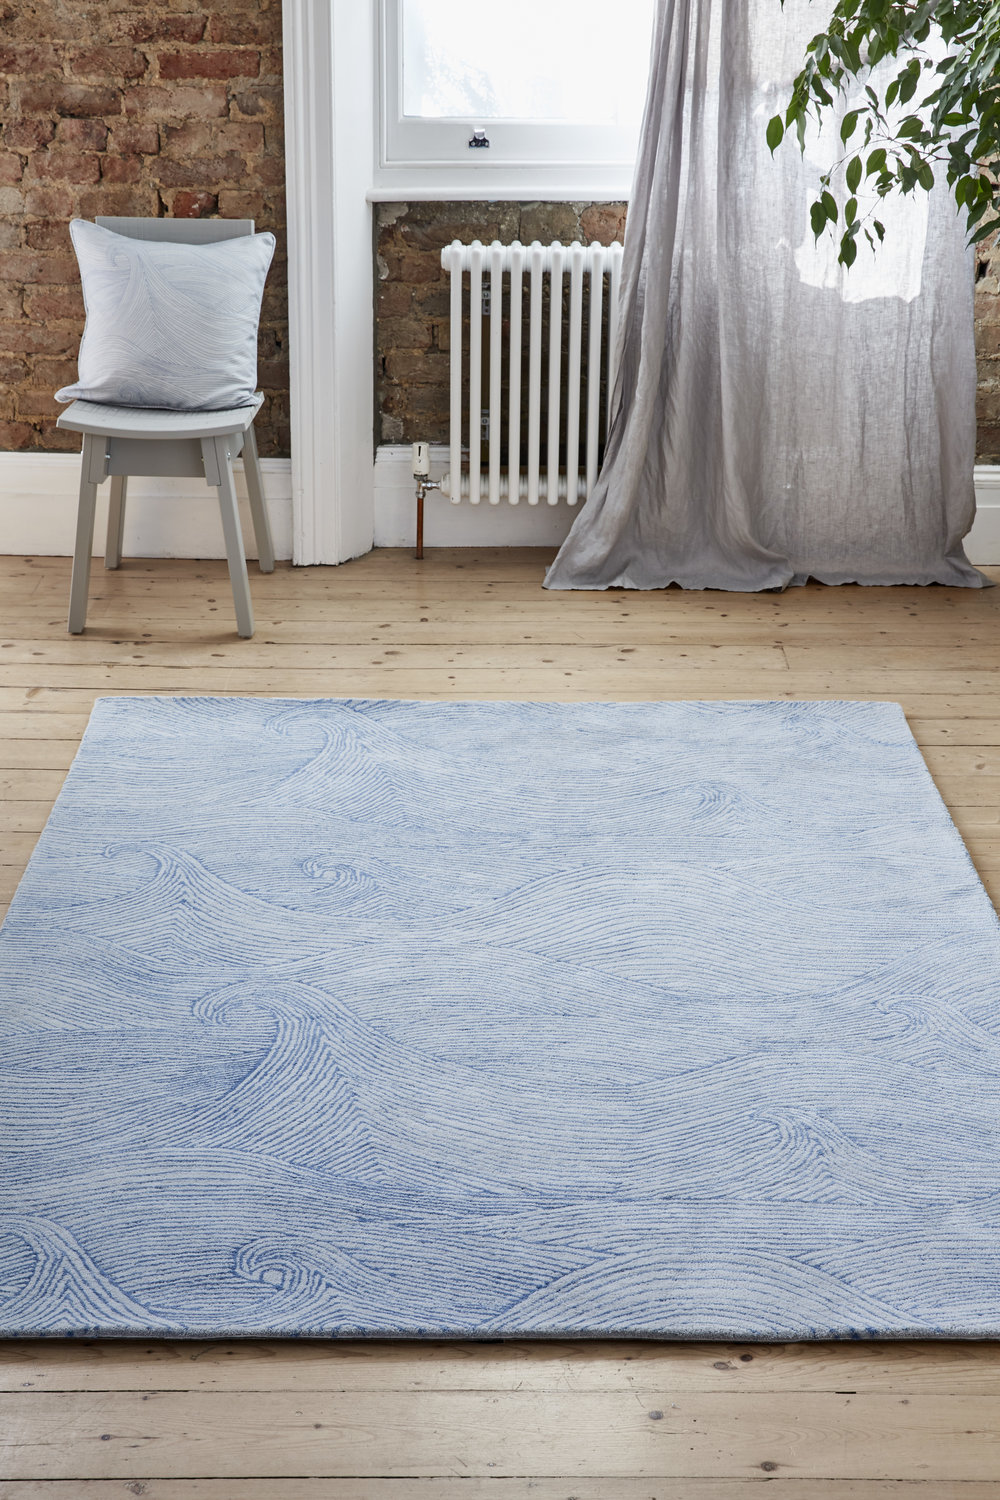 Abigail Edwards Rug in Seascape Summer.jpg